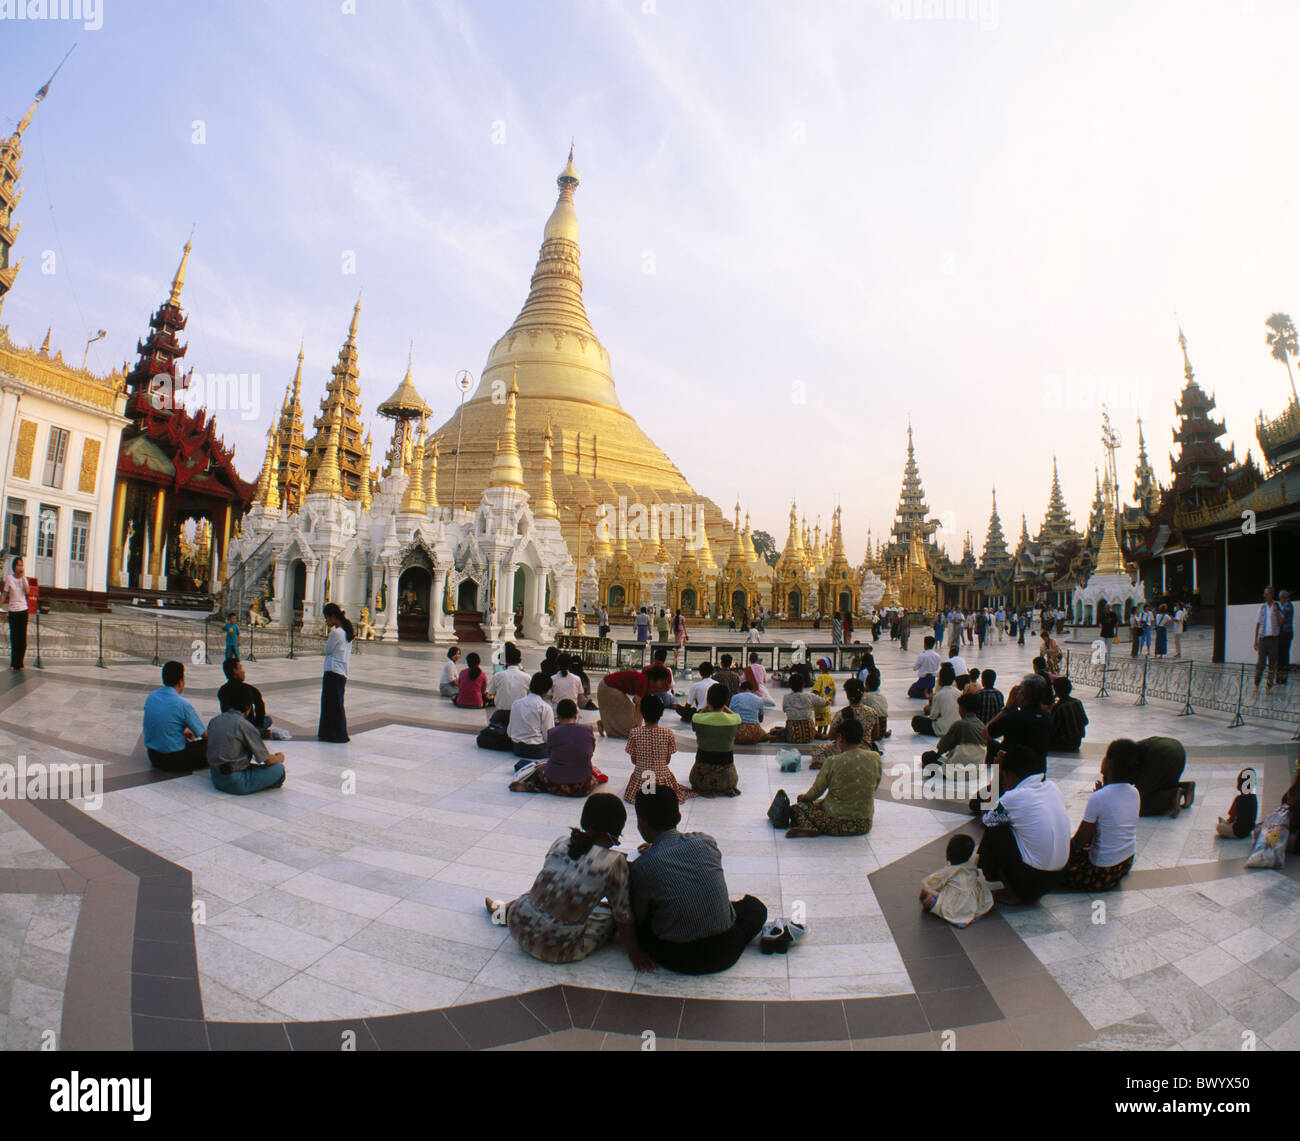 architecture Asia outside Burma Asia Buddhism believers creditors golden culture Myanmar no model release - Stock Image